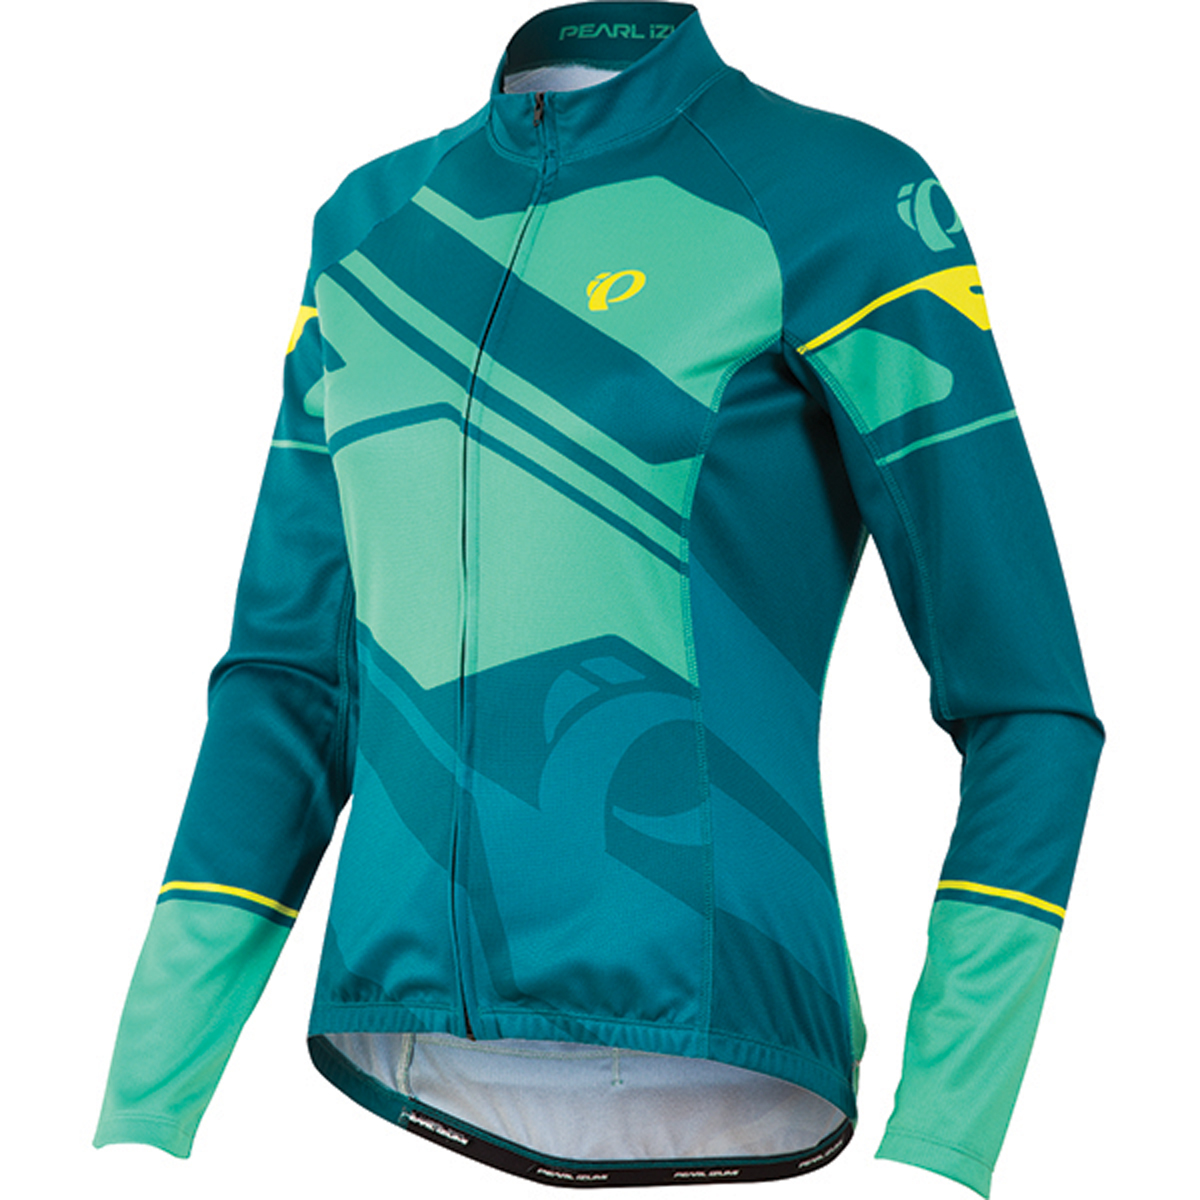 Pearl Izumi - Koszulka Dam Thermal Elite LTD Kolor zielony XL